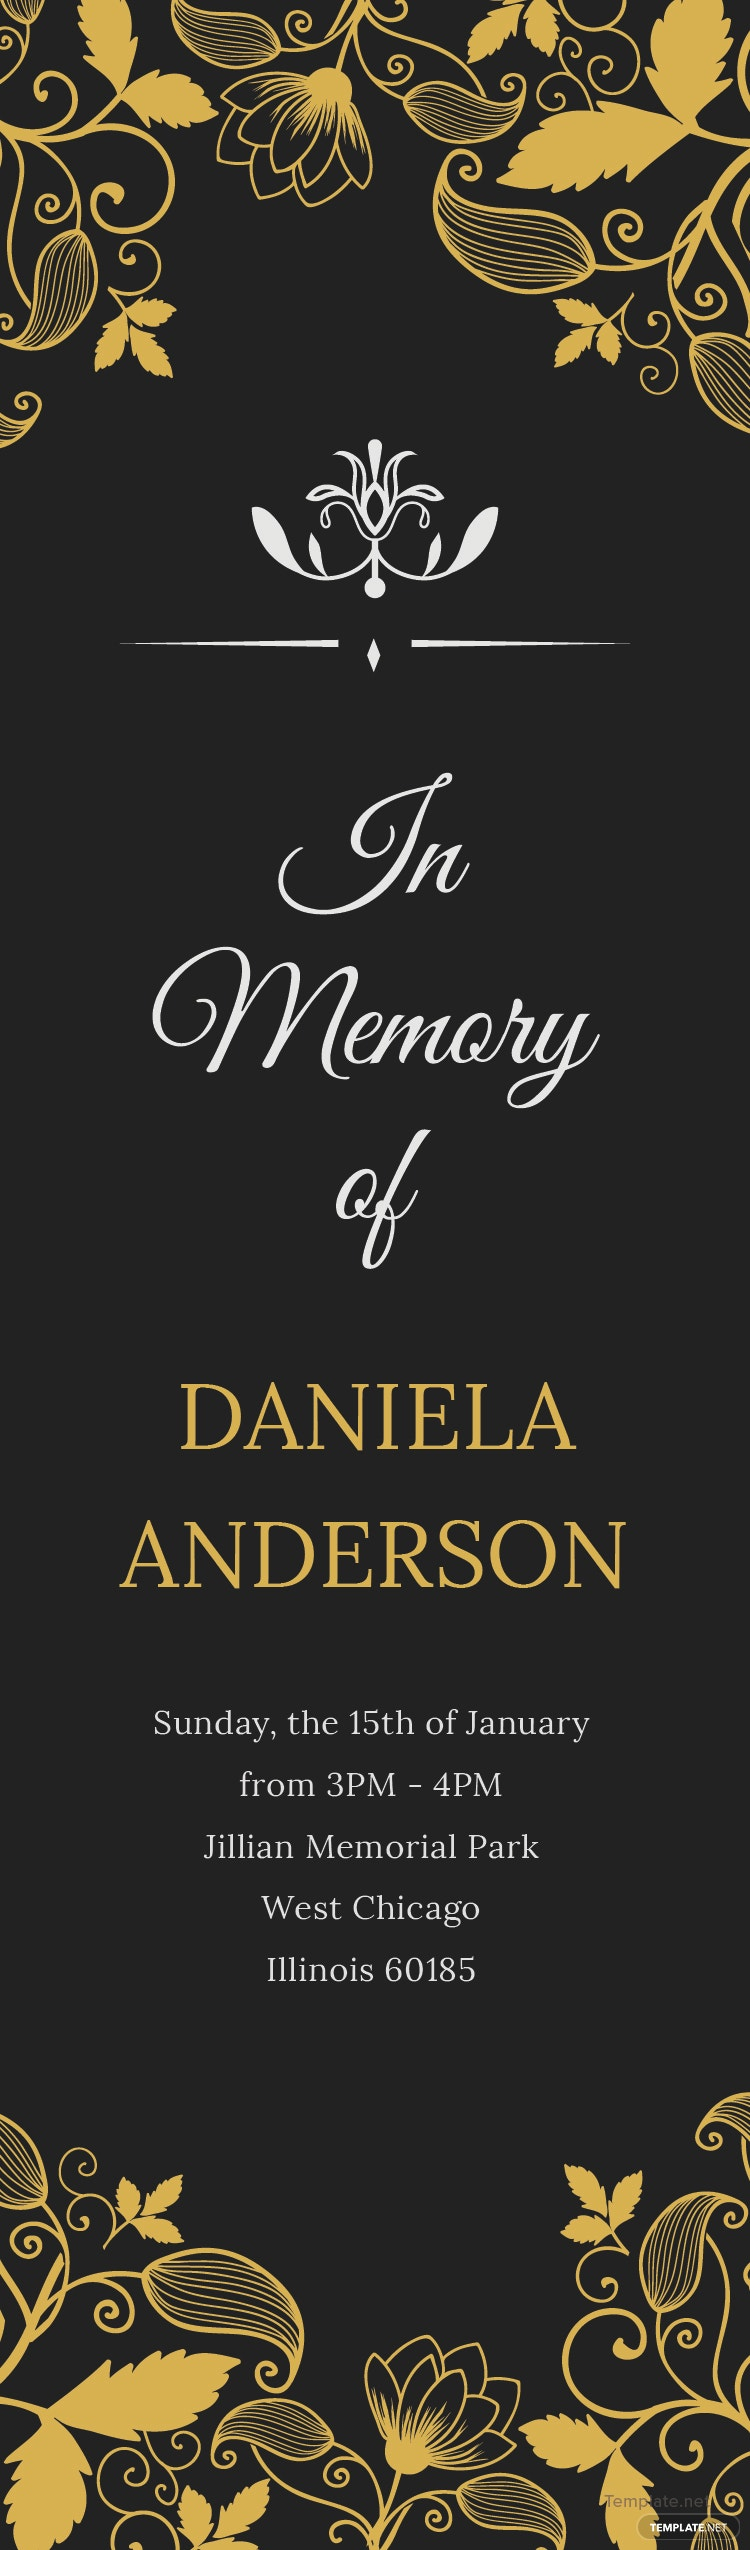 Free memorial bookmark template in adobe photoshop for Free memorial bookmark template download